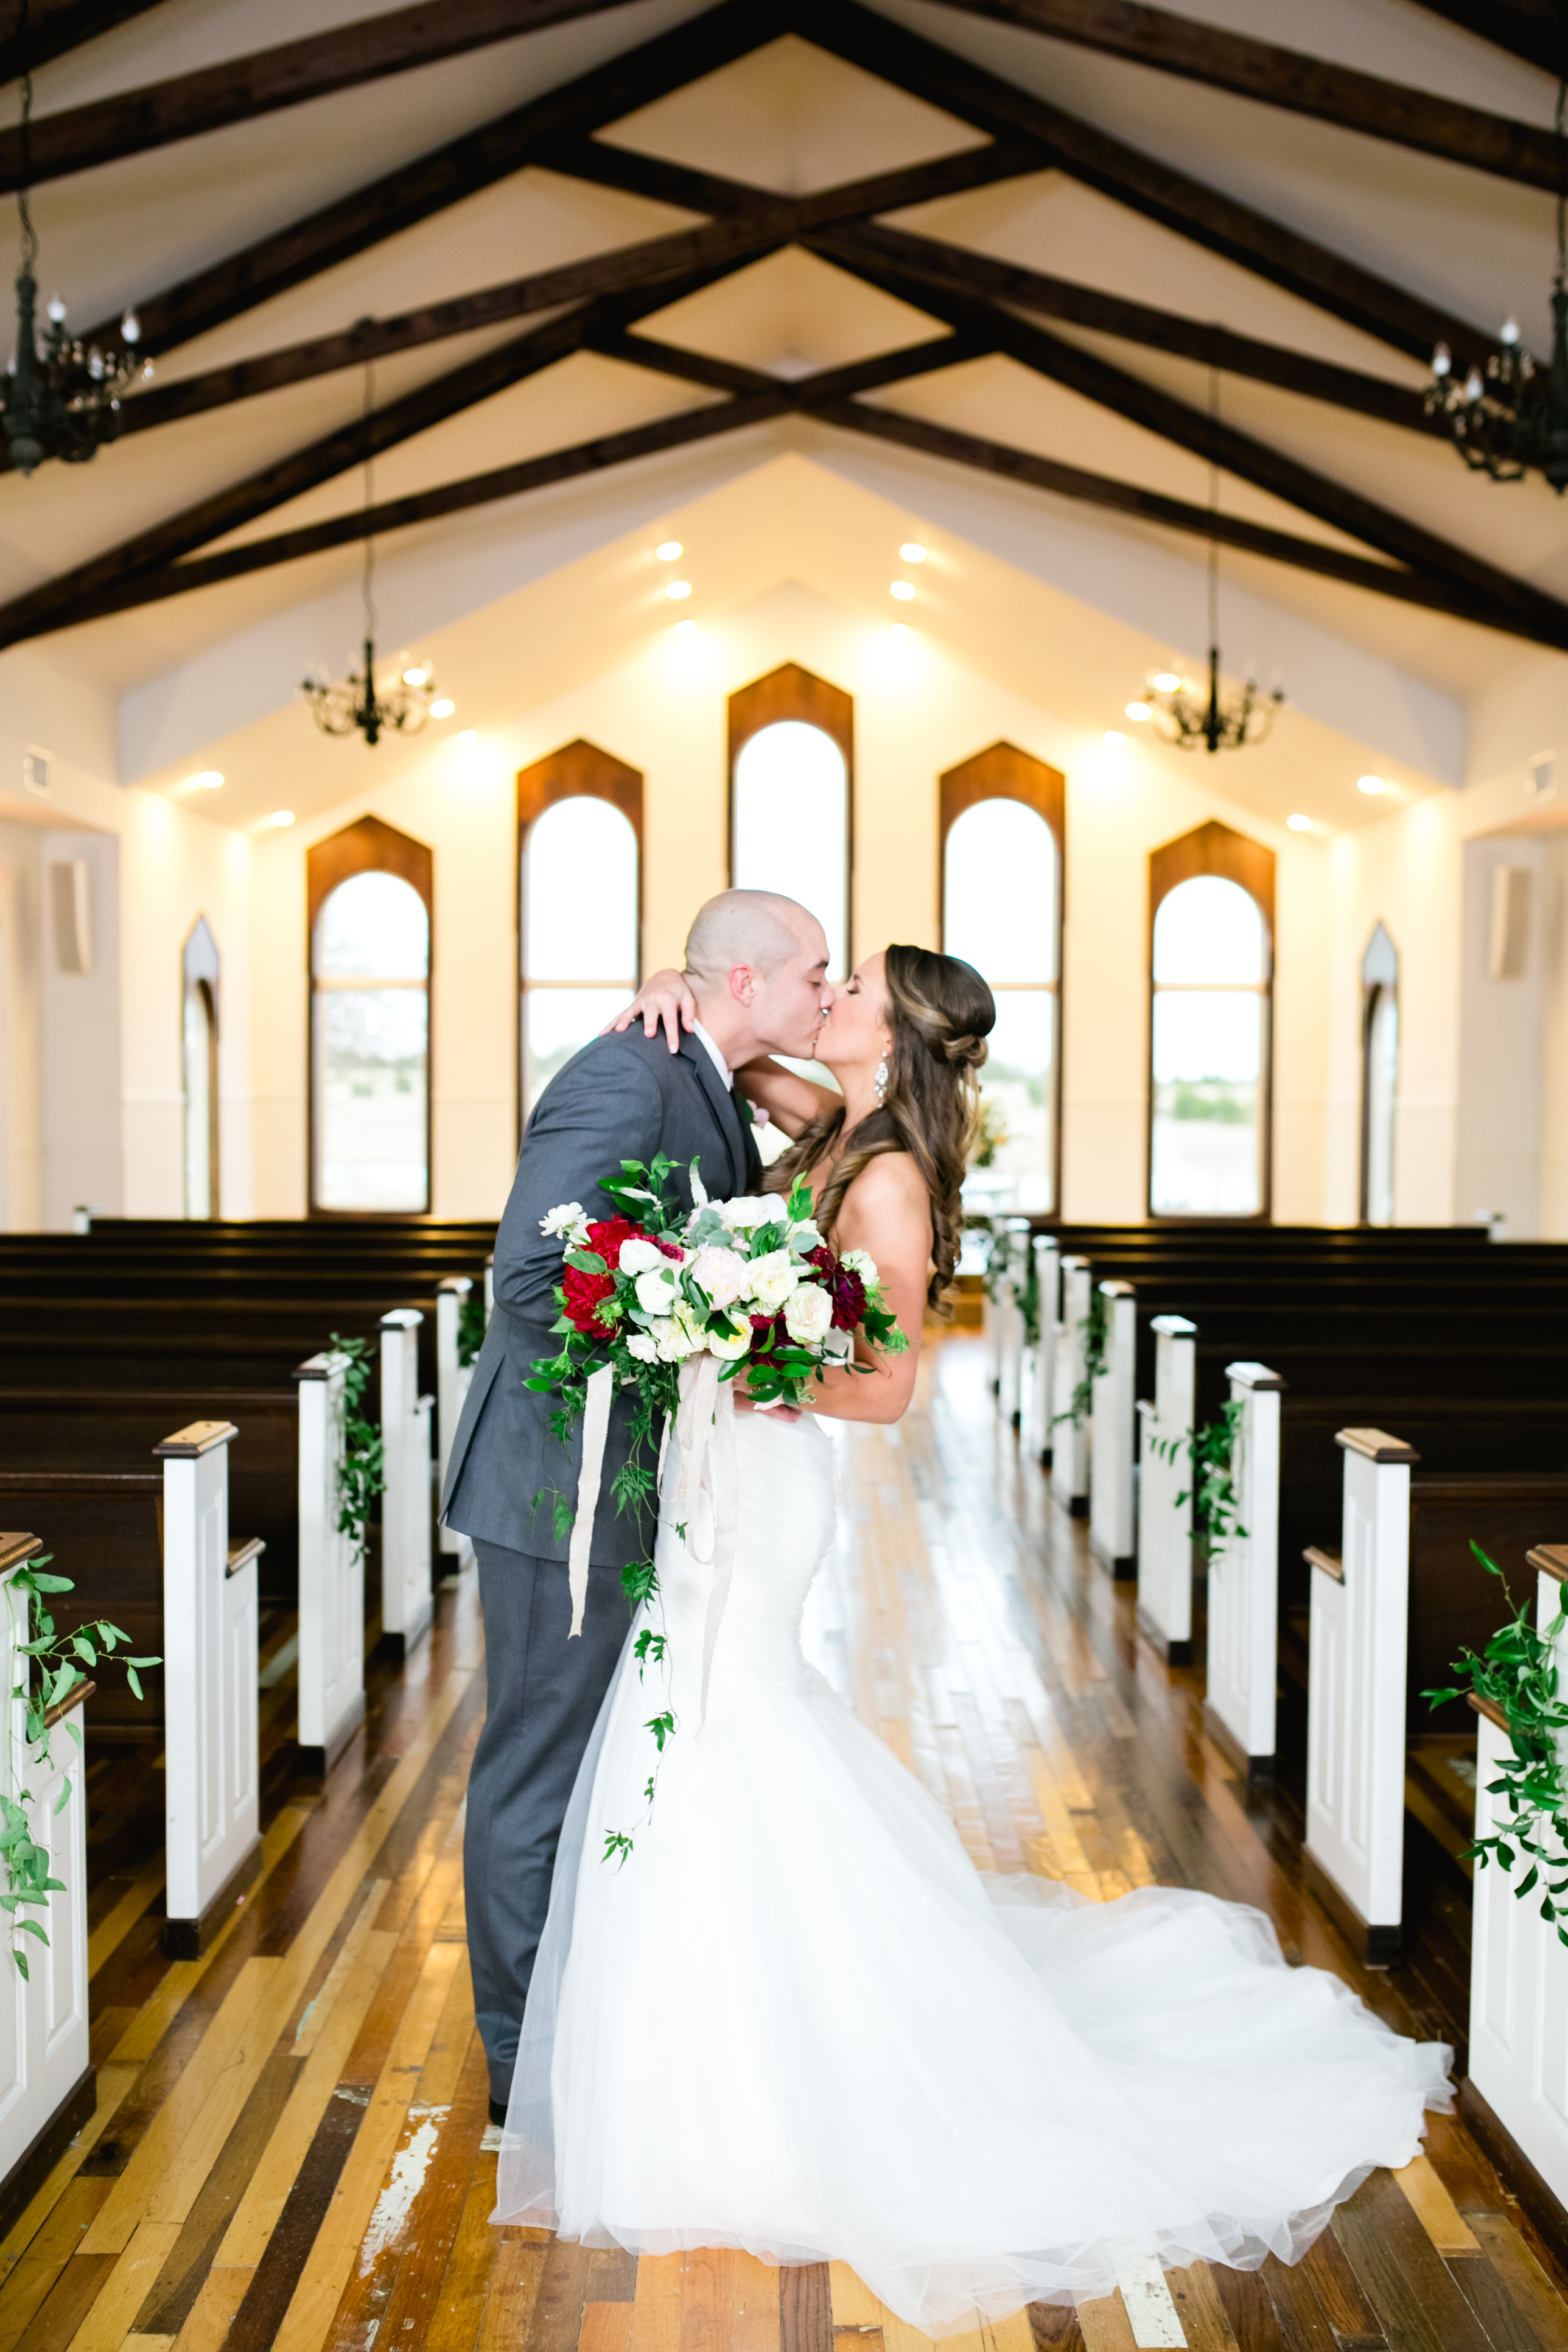 McKinney Wedding Chapel Amenities and Pricing